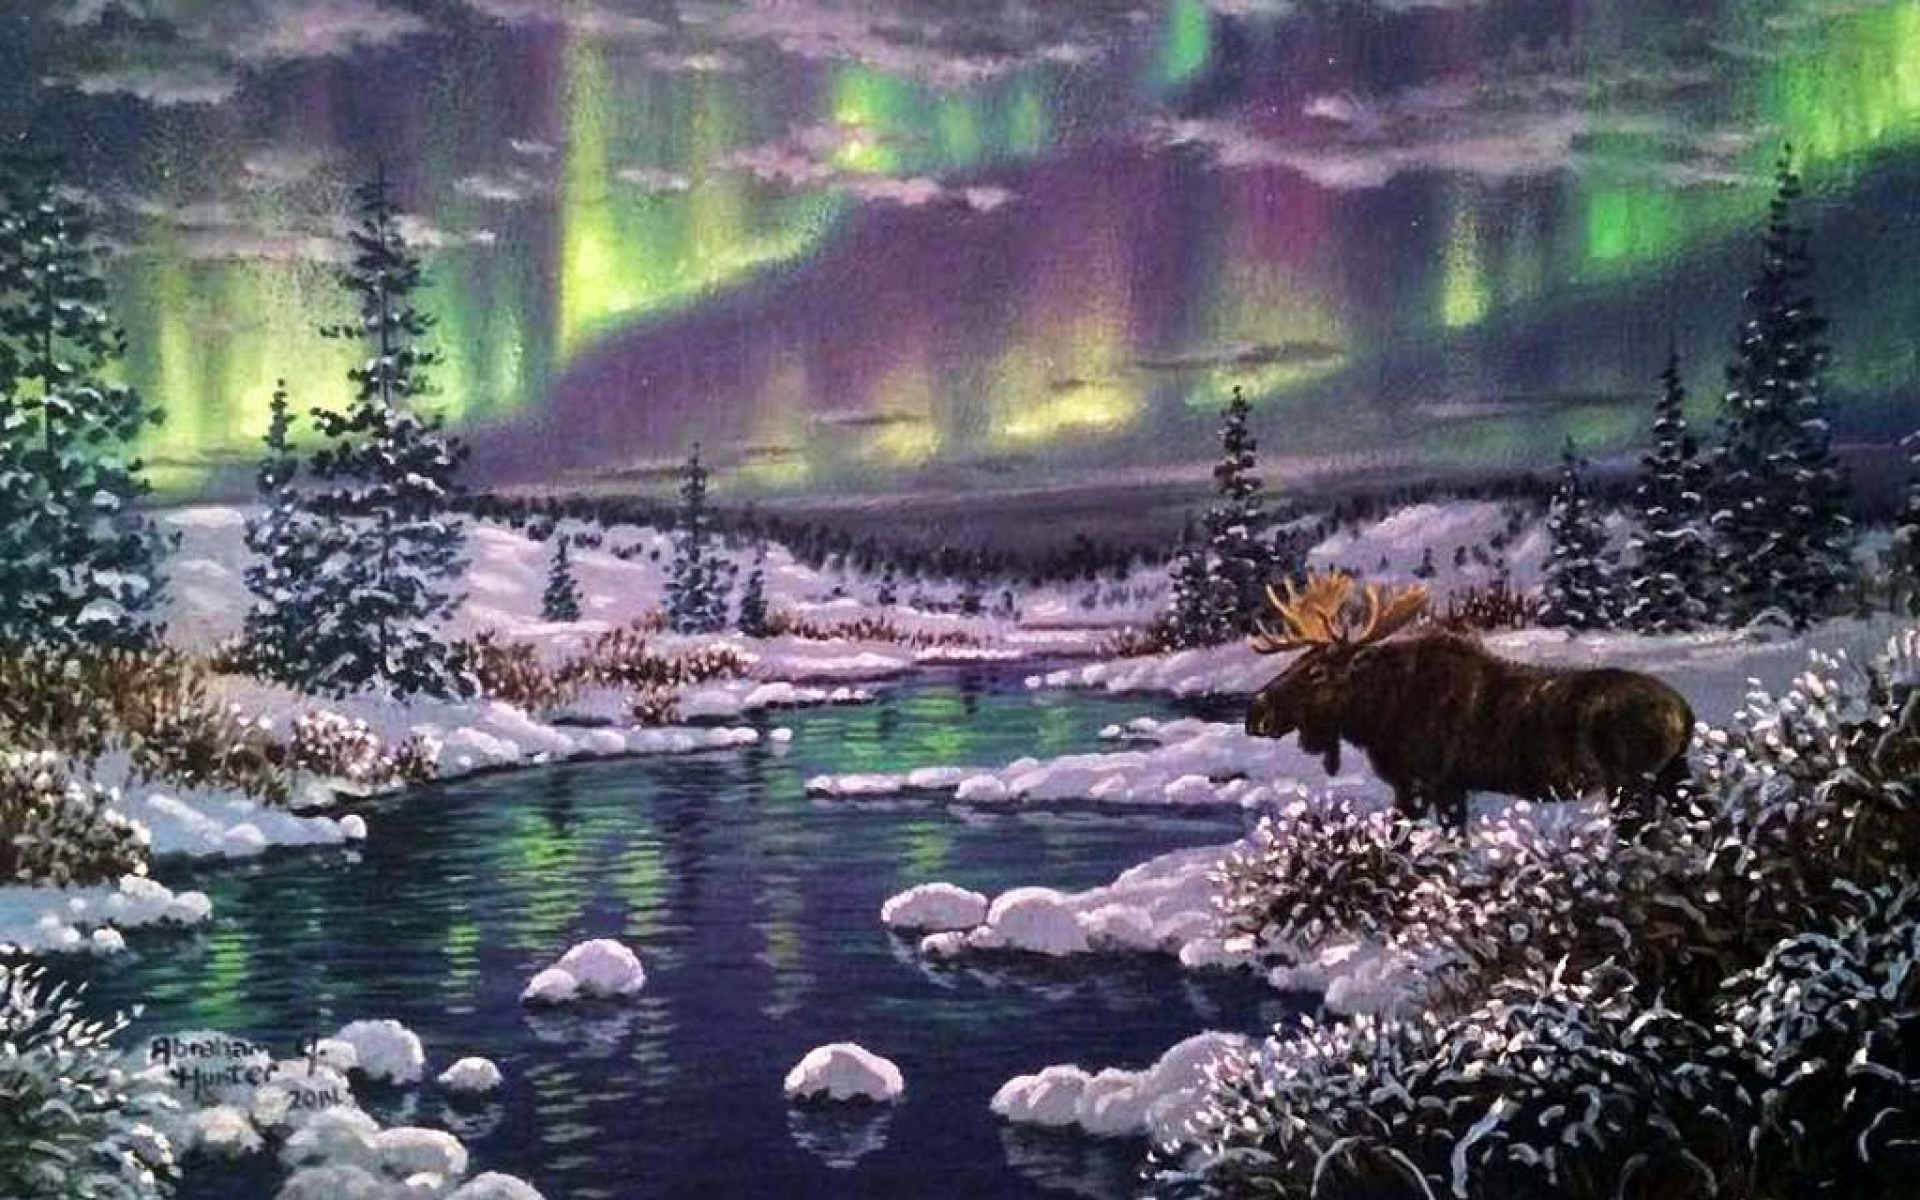 Cute Animated Wallpapers For Desktop Aurora Forest Snow Moose River Wallpapers Aurora Forest